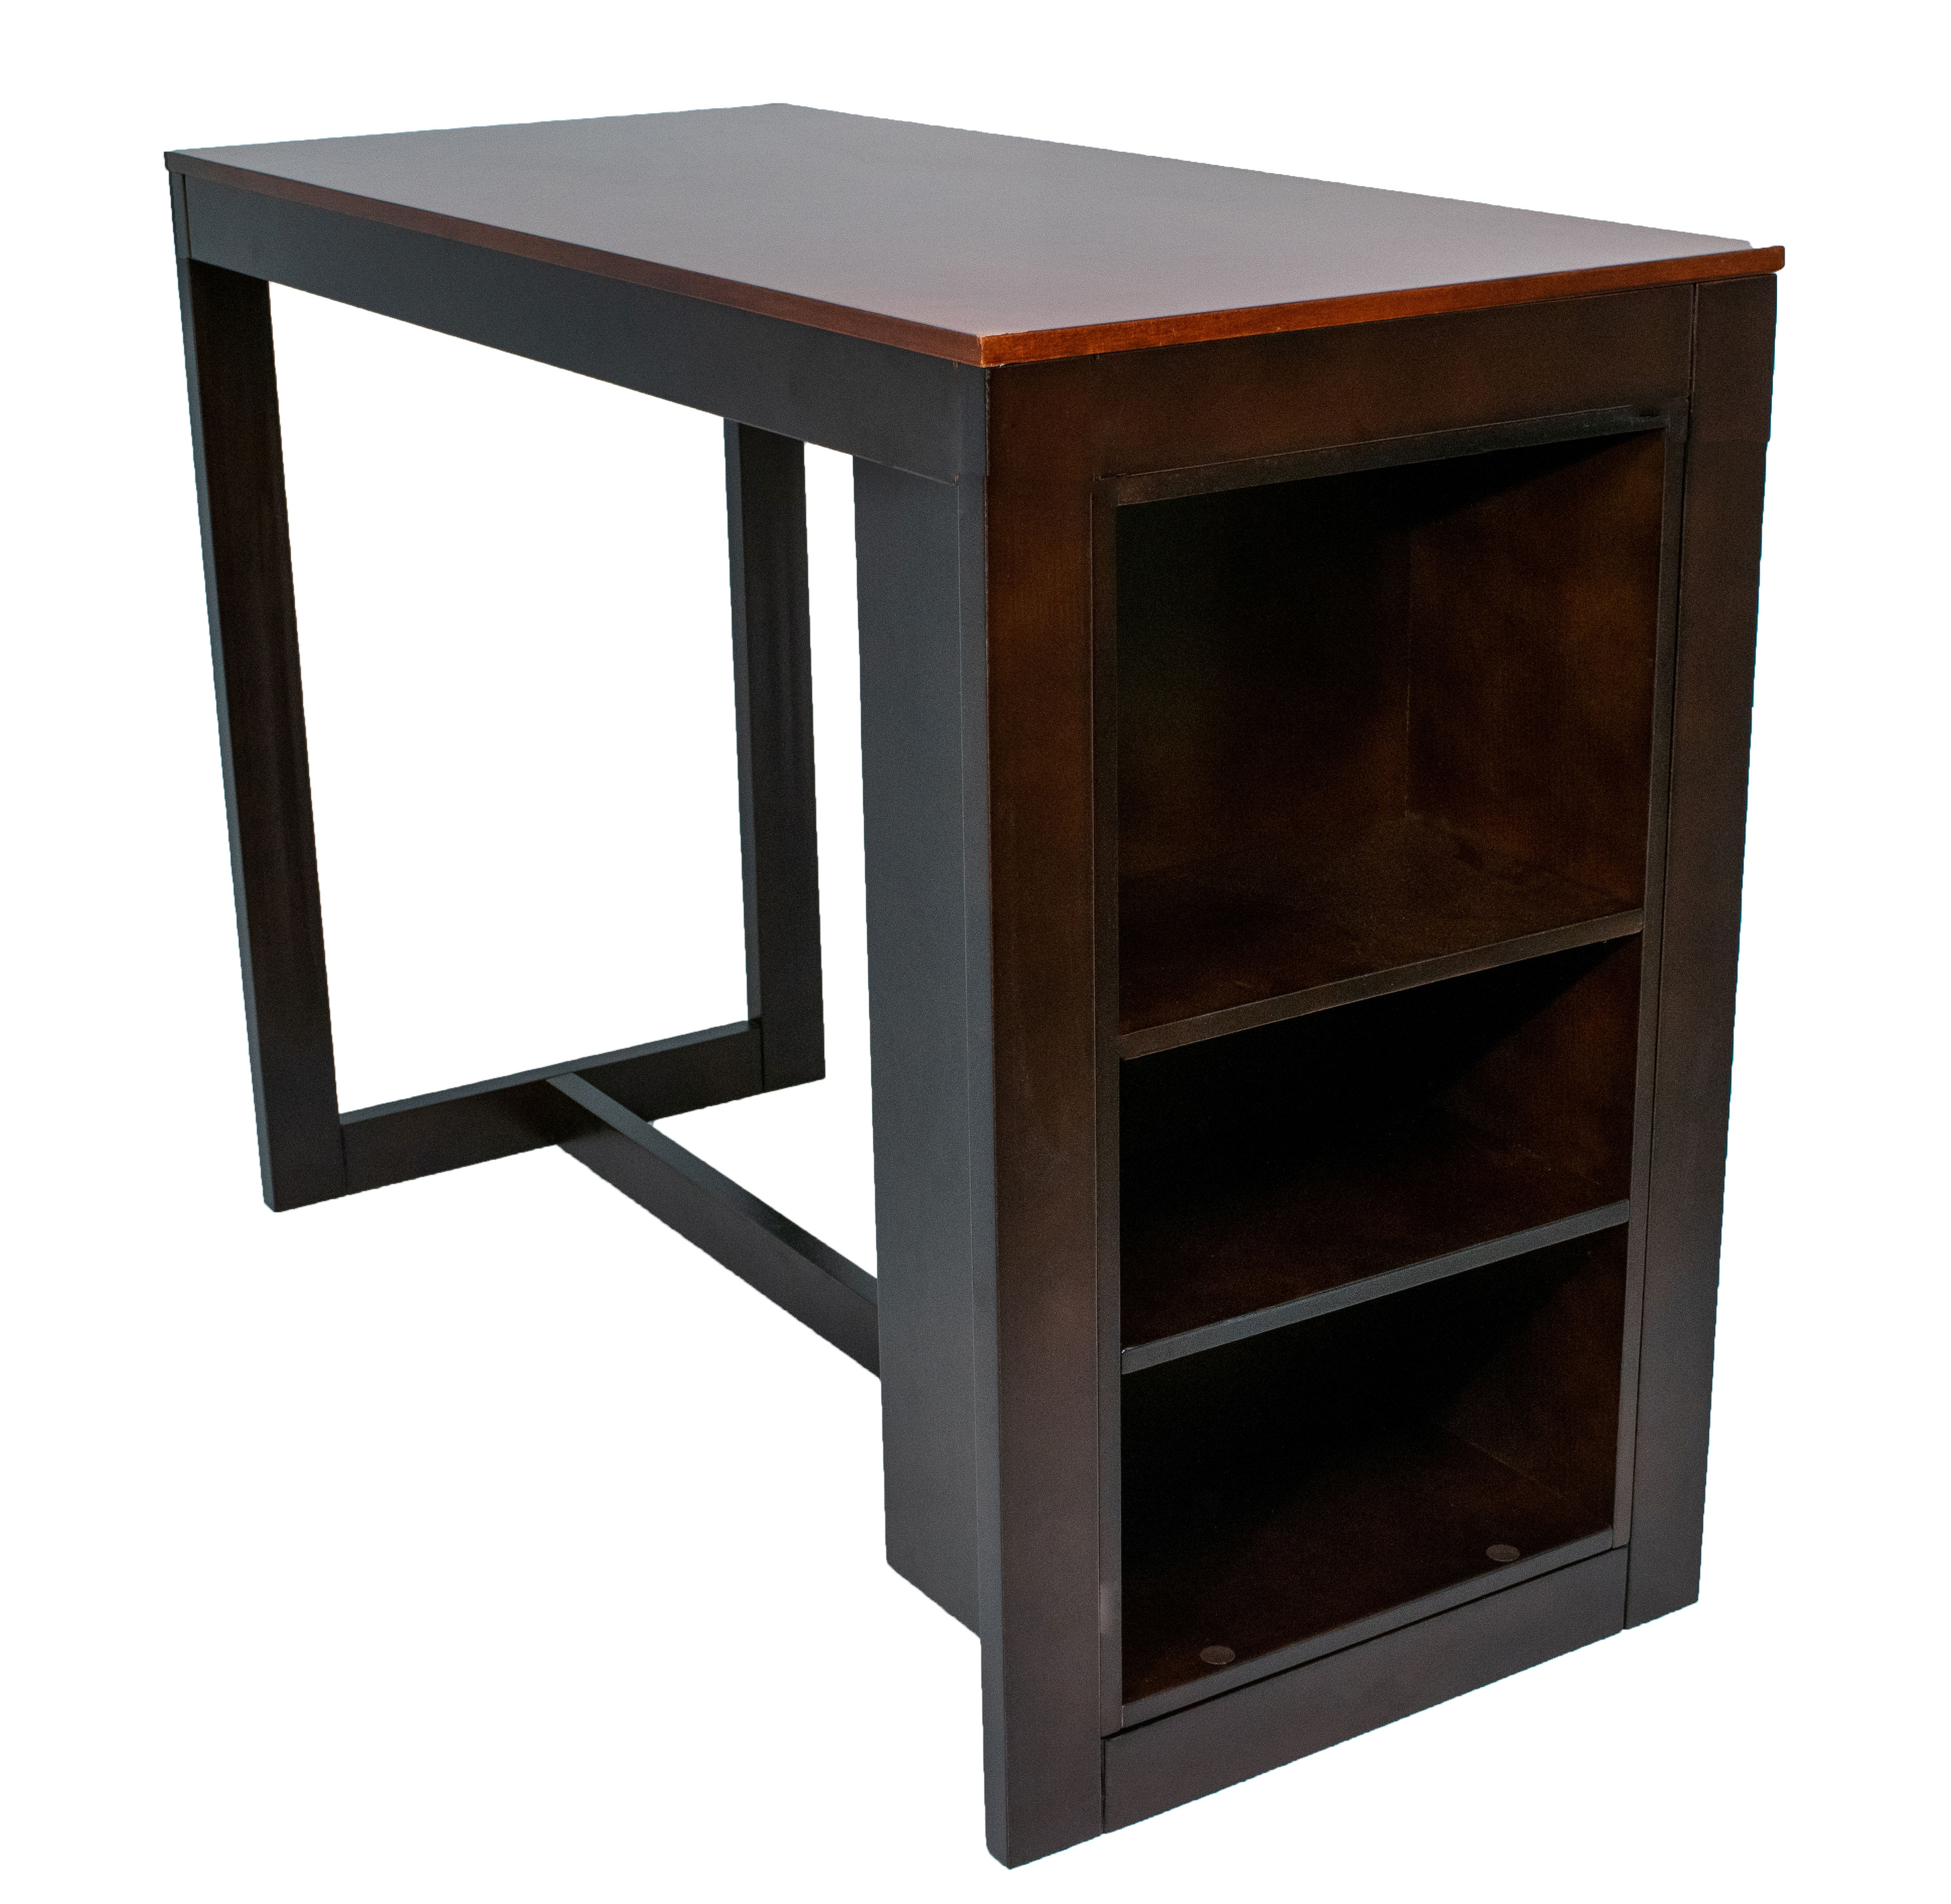 Sensational Zebra Products Willoughby Cherry Merlot Counter Height Dining Table With Shelving Download Free Architecture Designs Embacsunscenecom